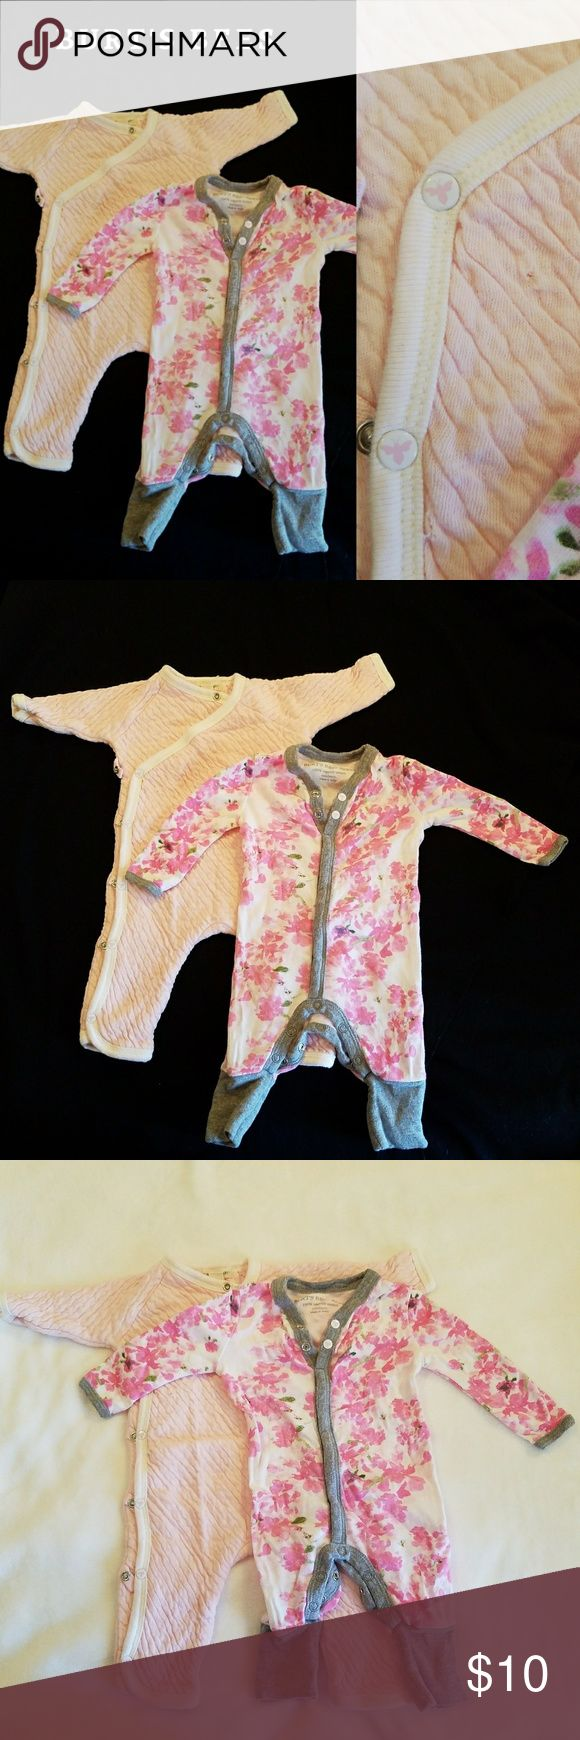 Burt's Bees Onesies, no feet 1st onesie - solid pink with white trim. Thicker material. Has a few small holes, see last picture. See image on snaps, snaps open all the way up the front  2nd onesie - 100% organic cotton. Pink flower print with gray trim and cuffs. Summer weight. DOES NOT unsnap up the front, leg area only. Burt's Bees Baby One Pieces Bodysuits